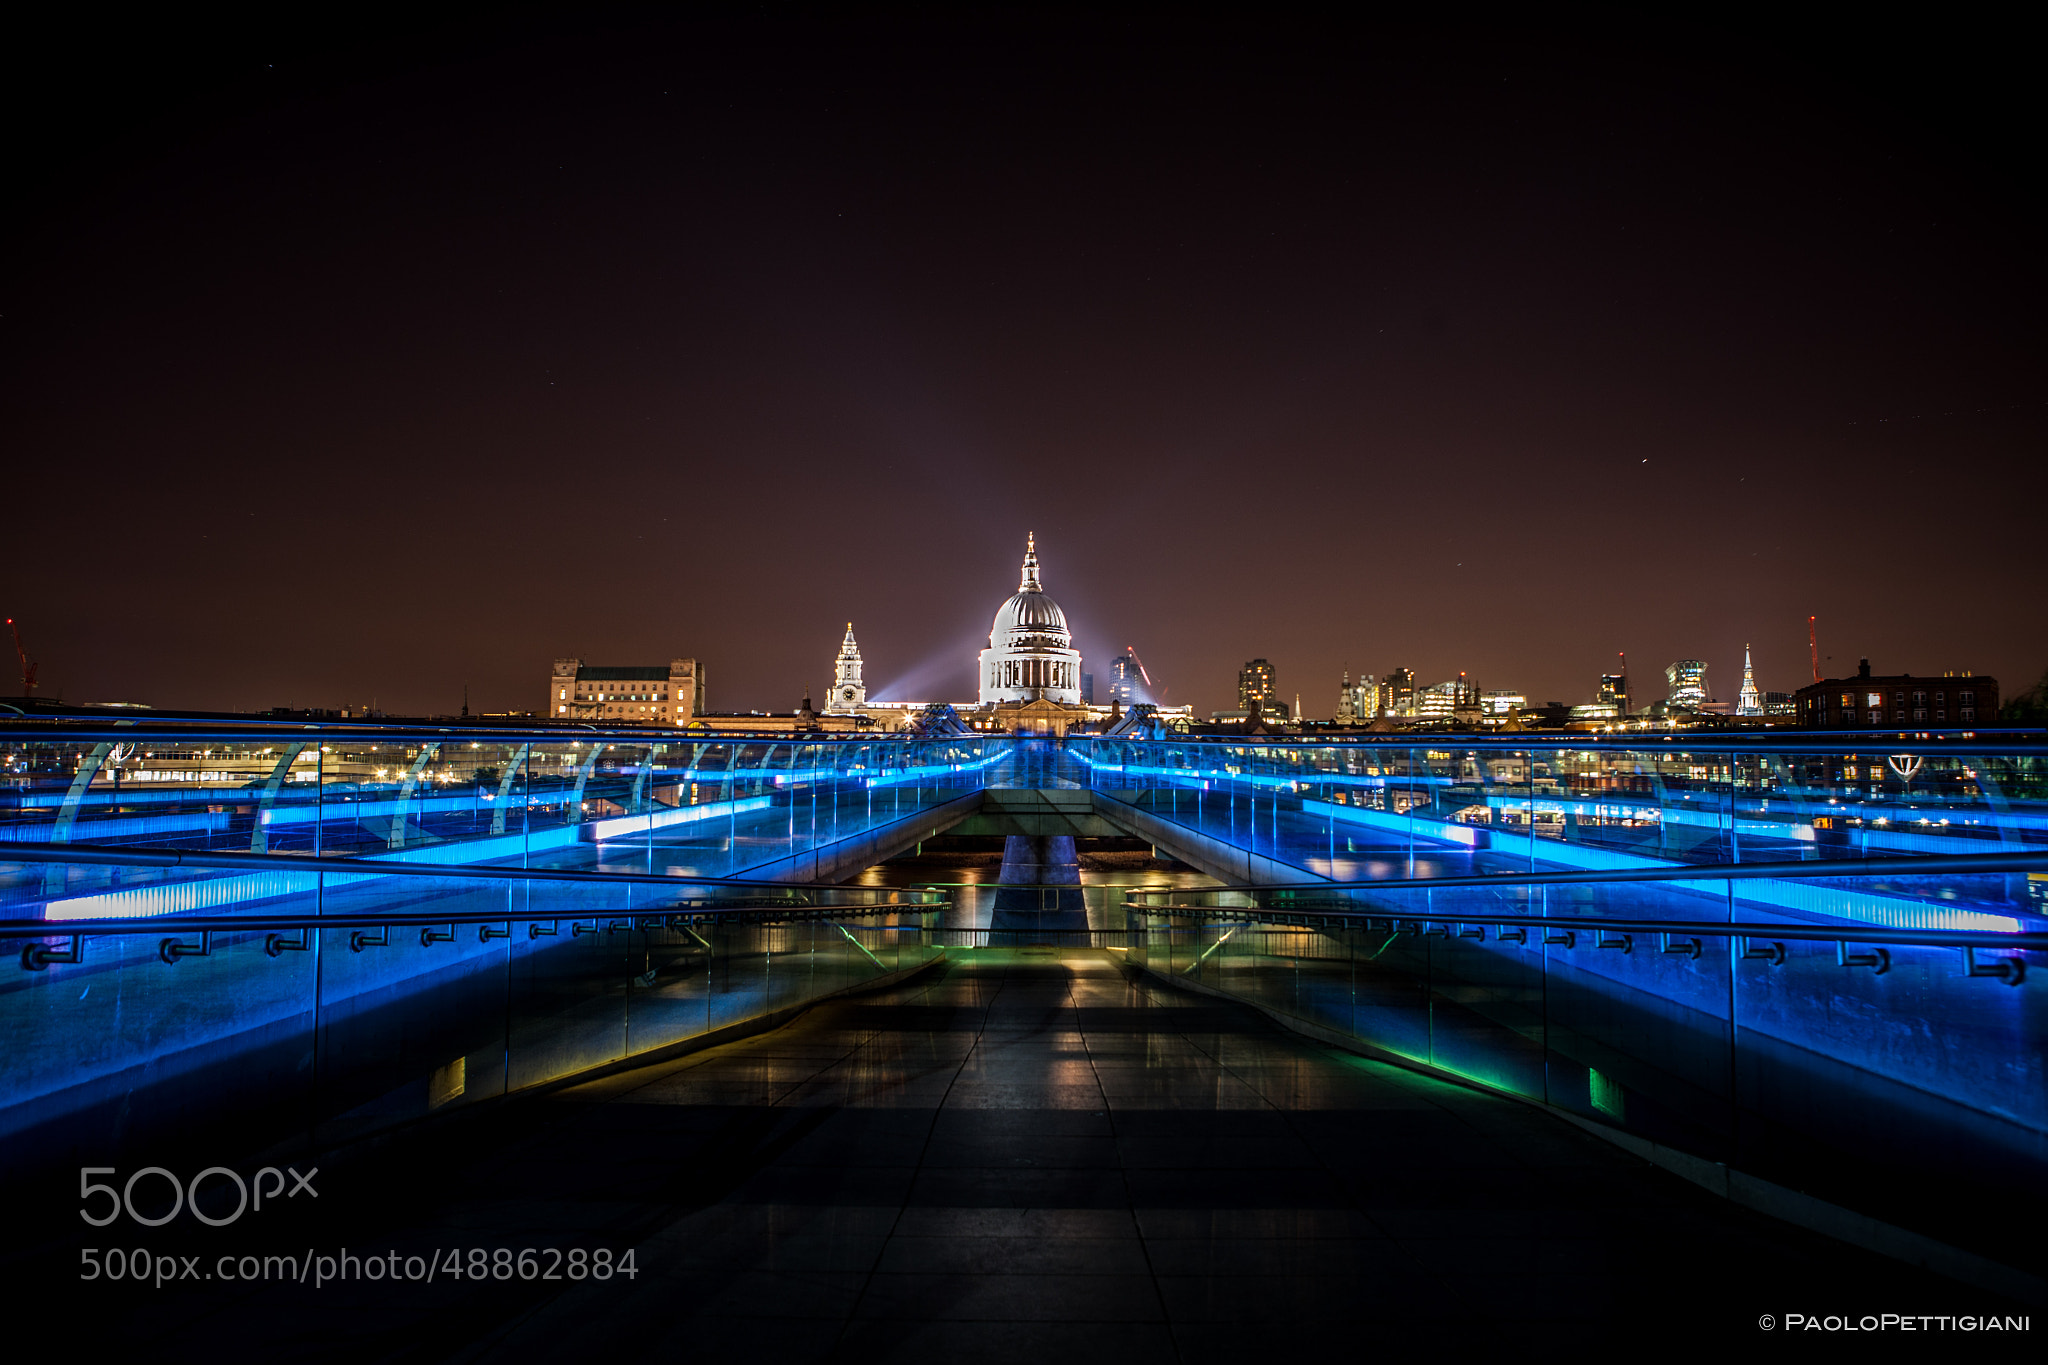 Photograph St. Paul - London by Paolo Pettigiani on 500px